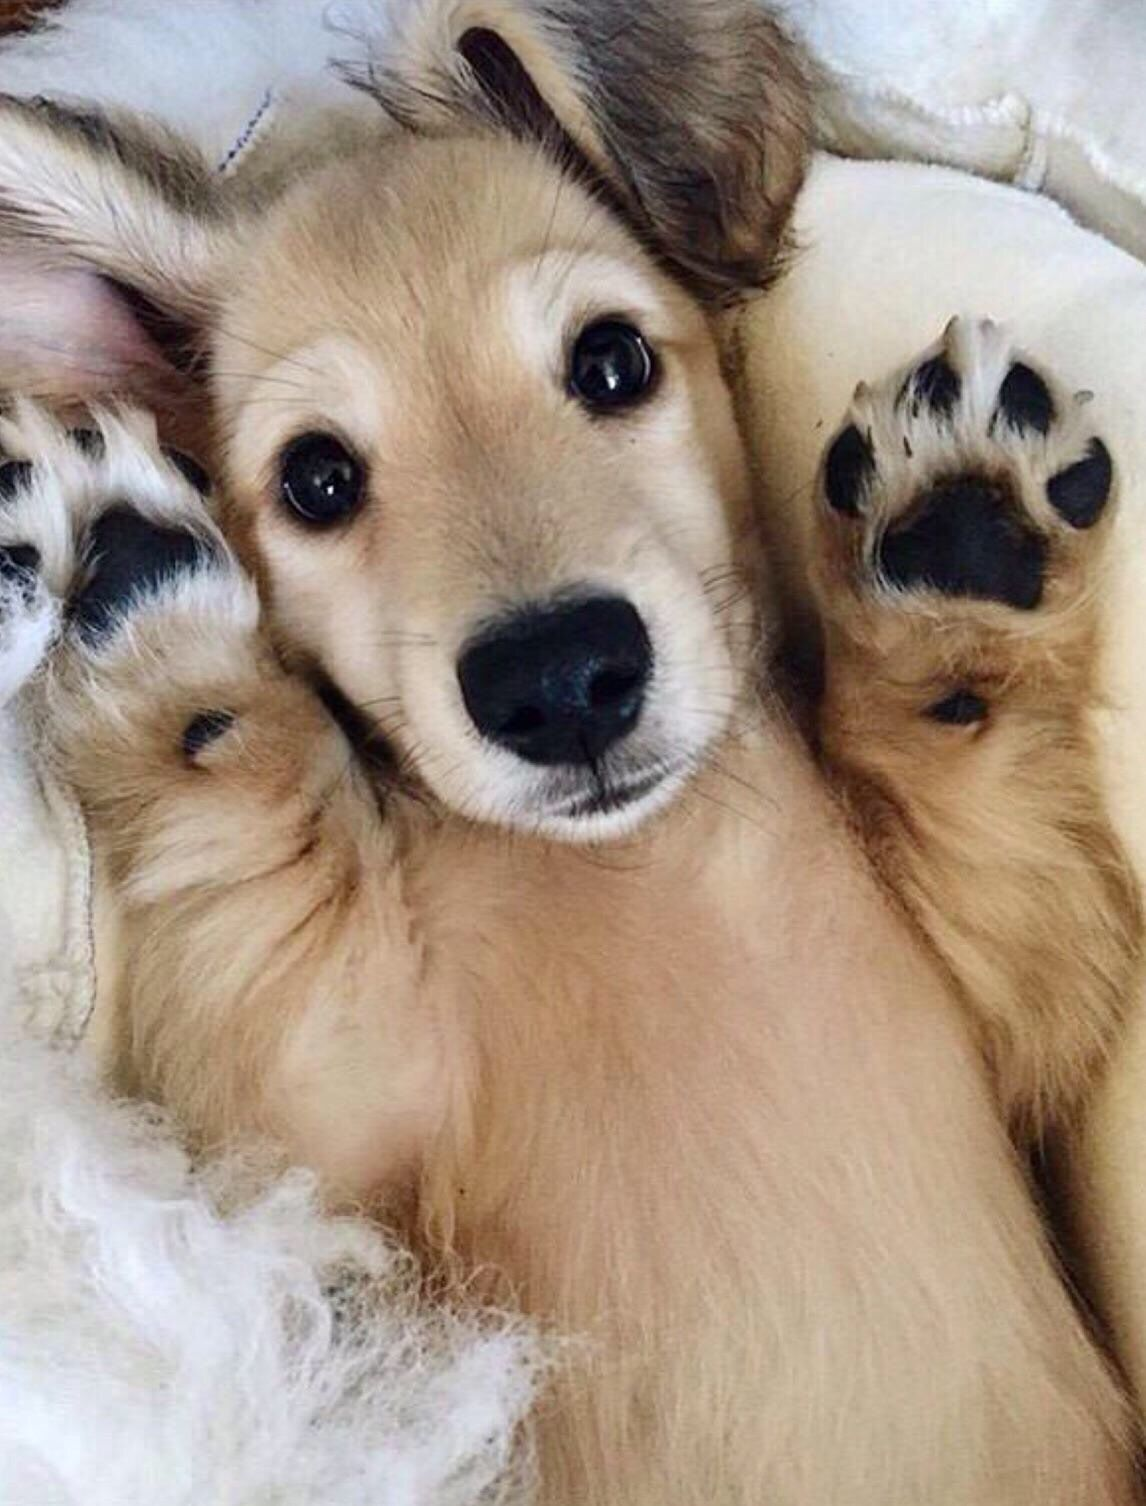 Send Belly Rubs Please Cute Dogs Cute Animals Cute Dogs And Puppies